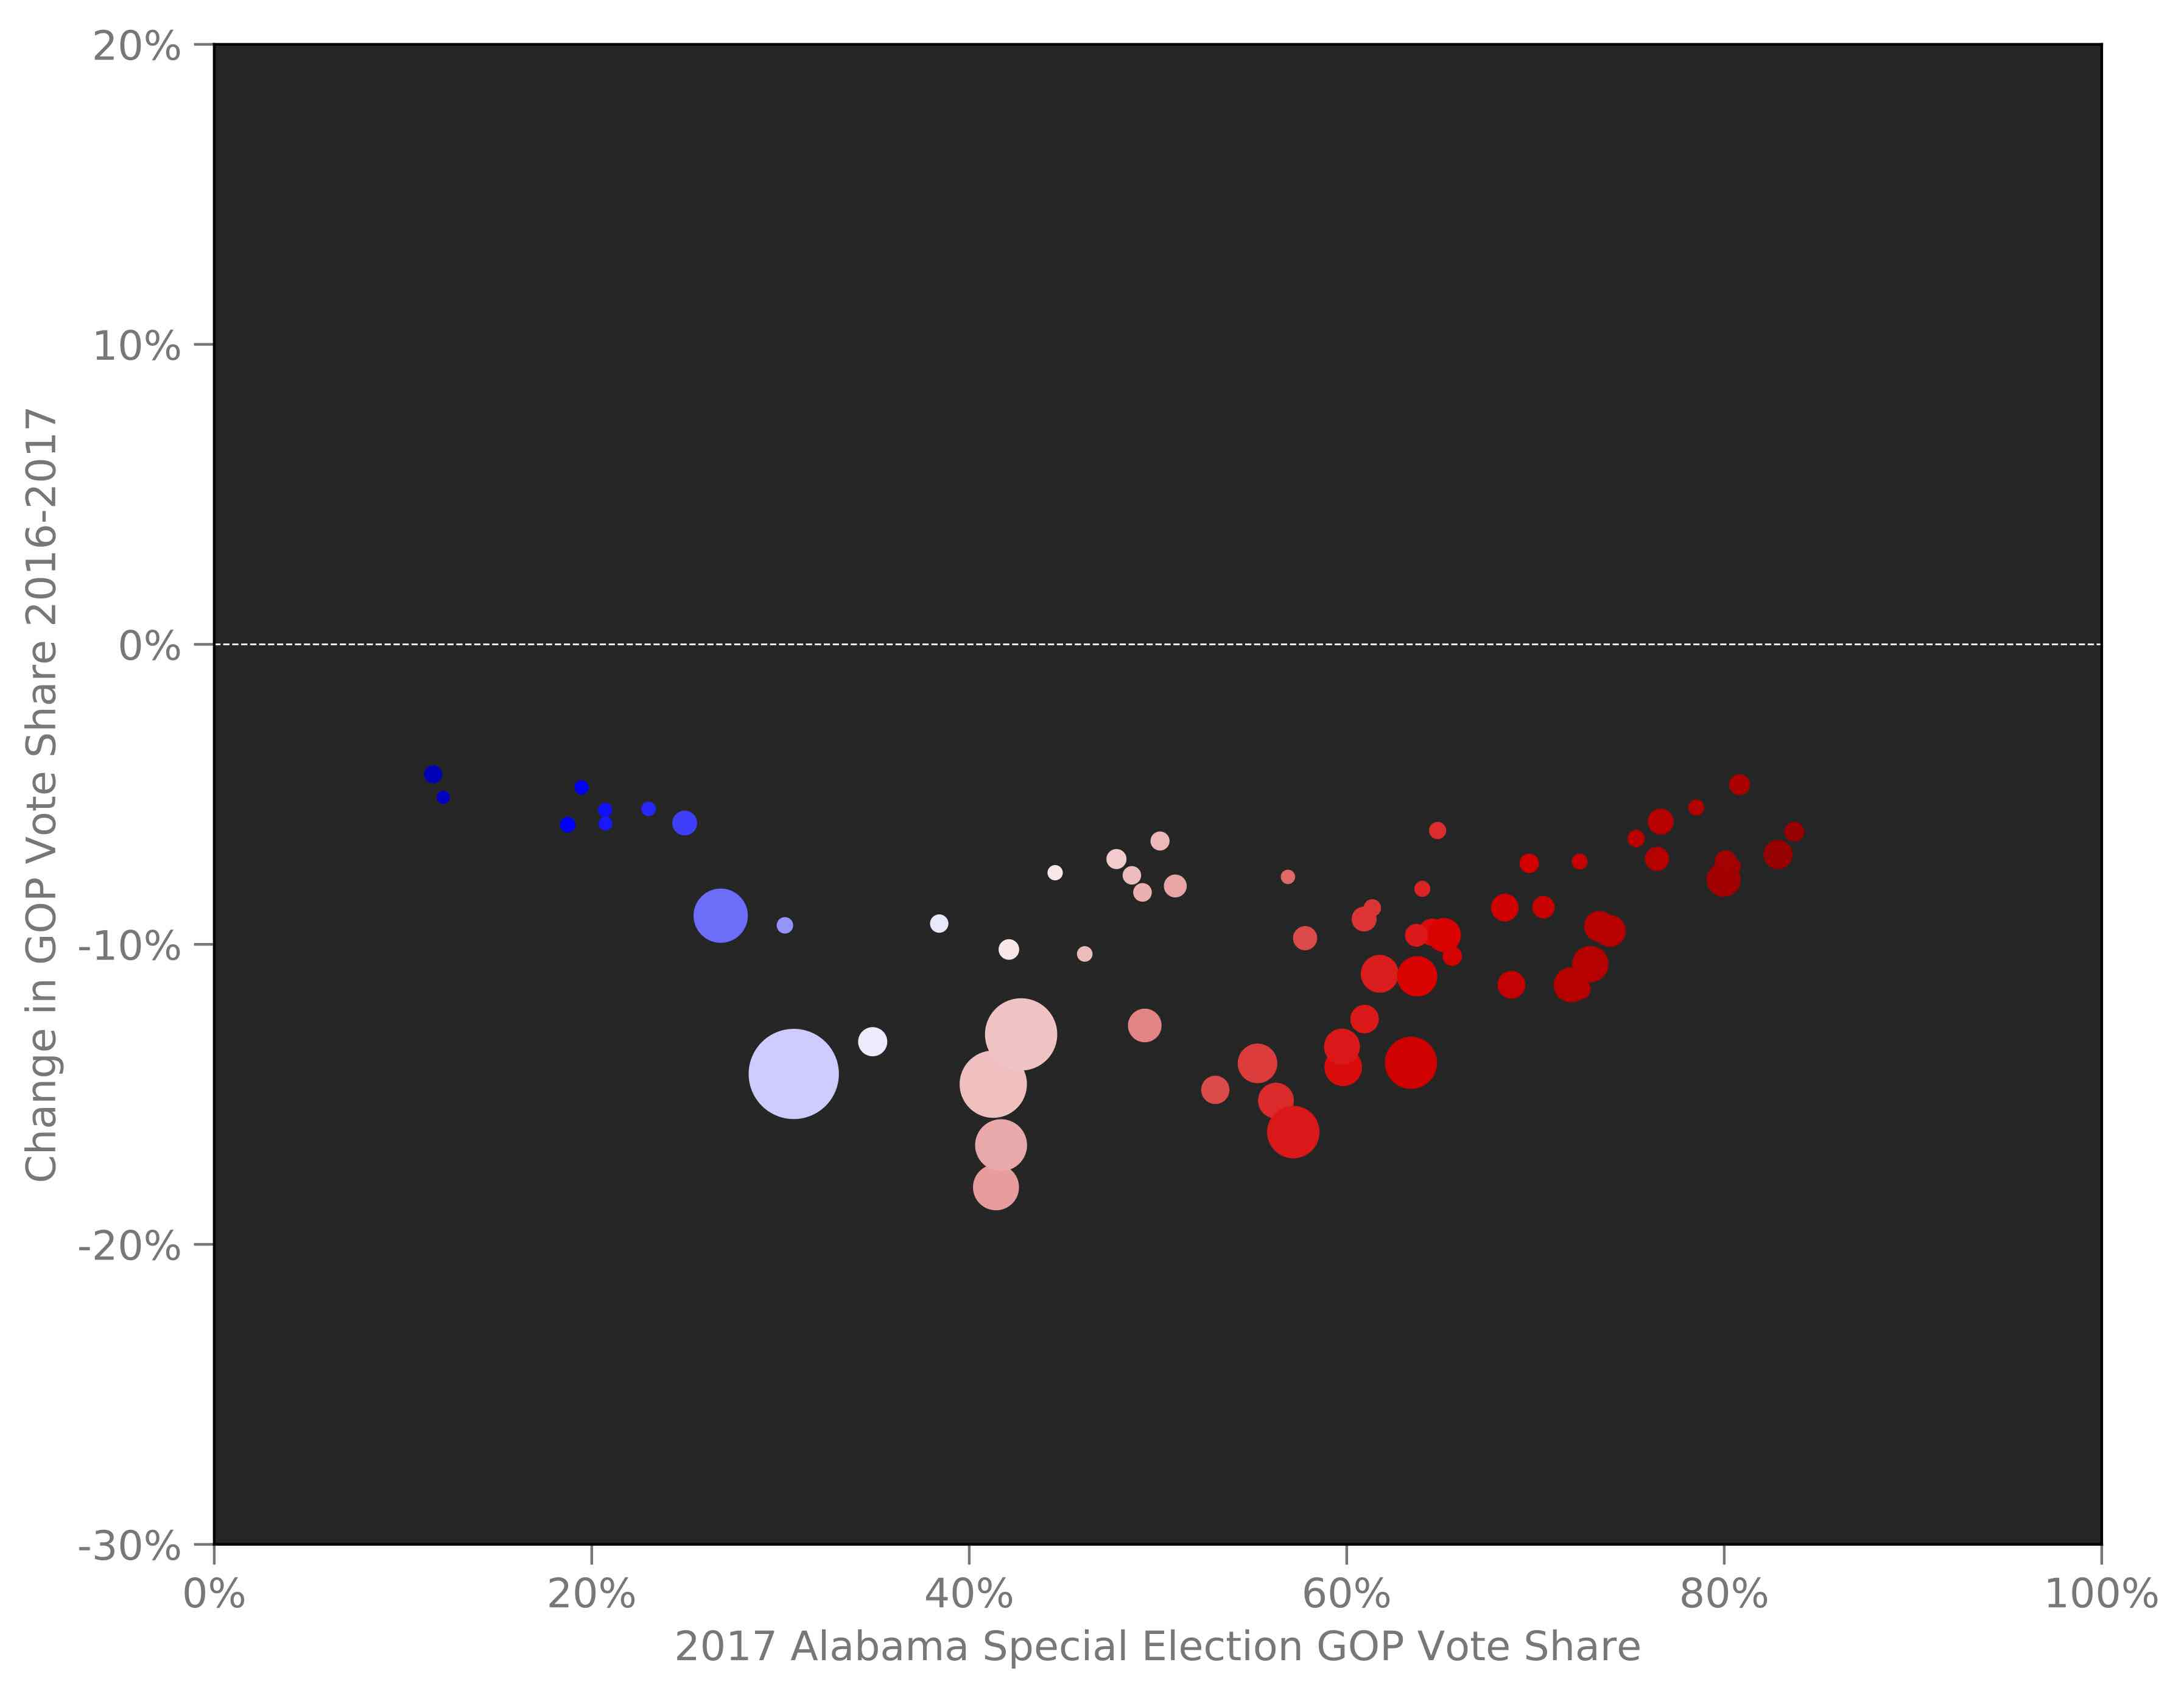 Figure 3: Comparison of the 2016 presidential election and 2017 special election results in Alabama. As usual, each bubble represents a county, and the size of the bubble represents the county population. The bubbles are colored by their vote in 2016. Click to download the image.